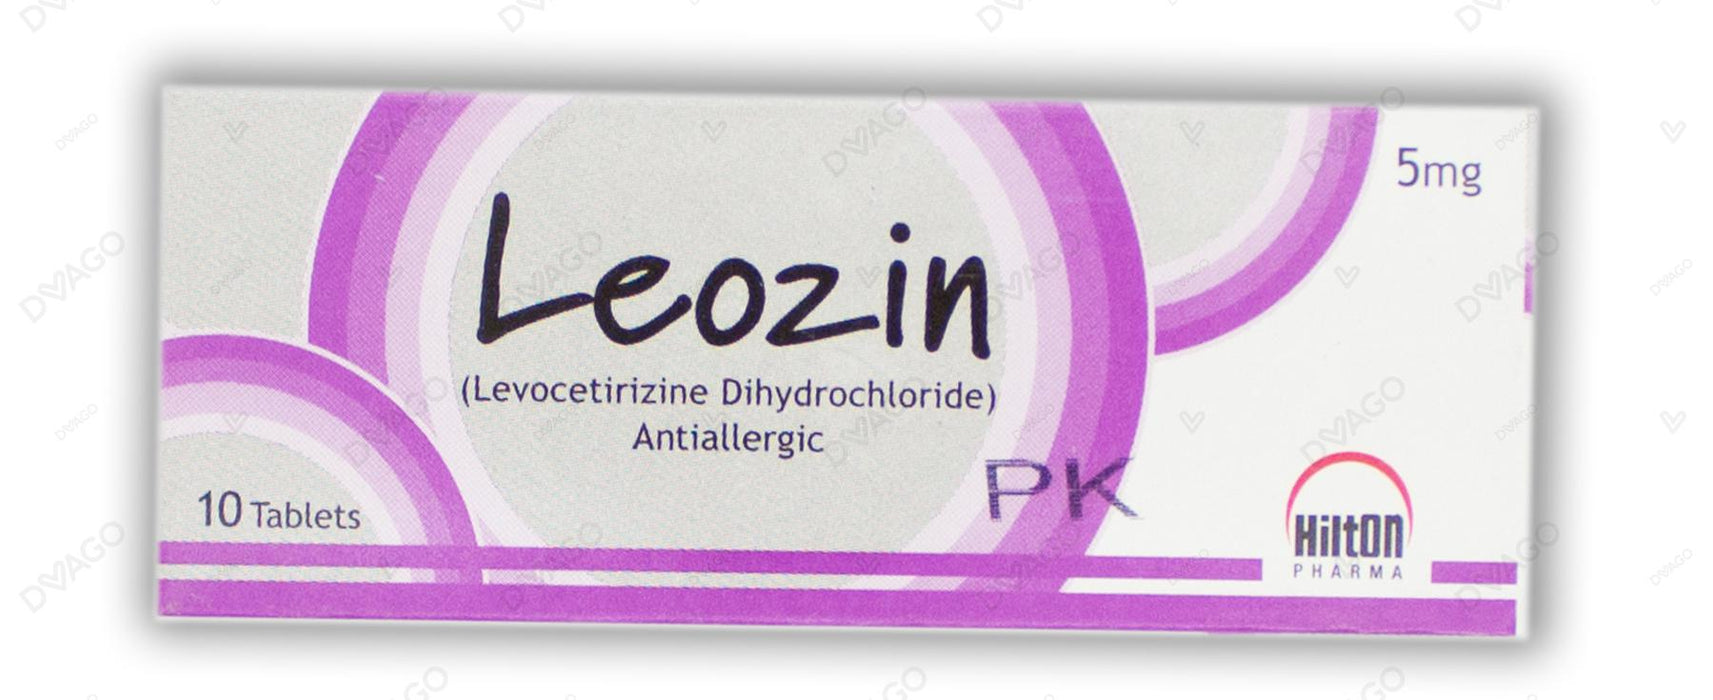 Leozin Tablets 5mg 10's